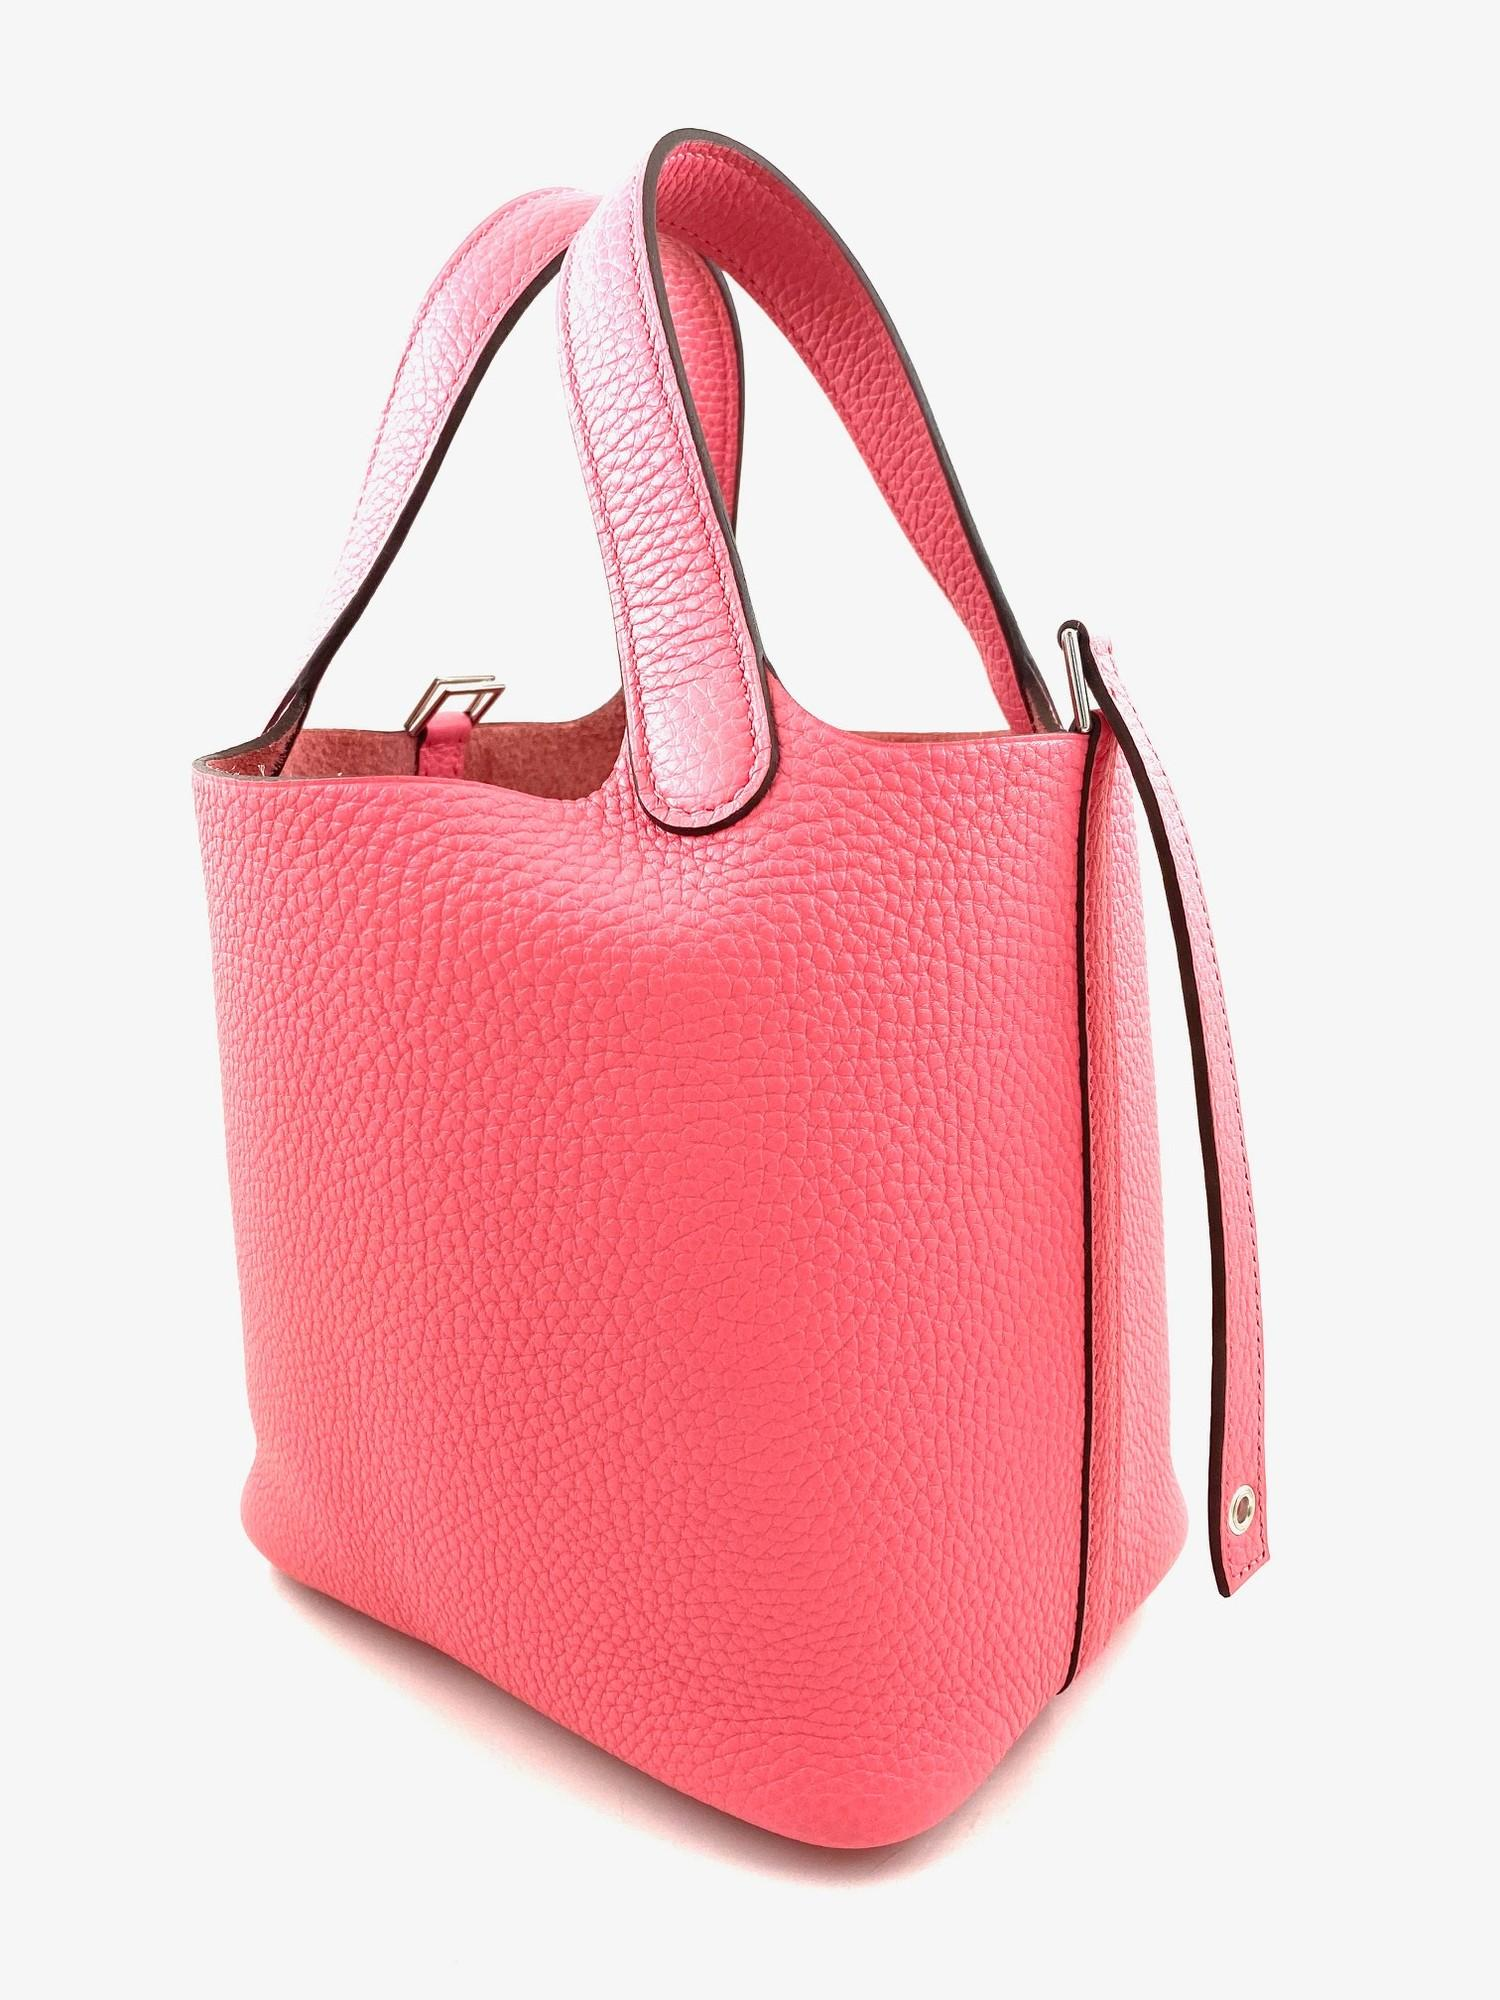 A Rose Azalee Hermes Picotin 18cm in clemence leather with palladium hardware. Includes Box, Dustbag - Image 5 of 5